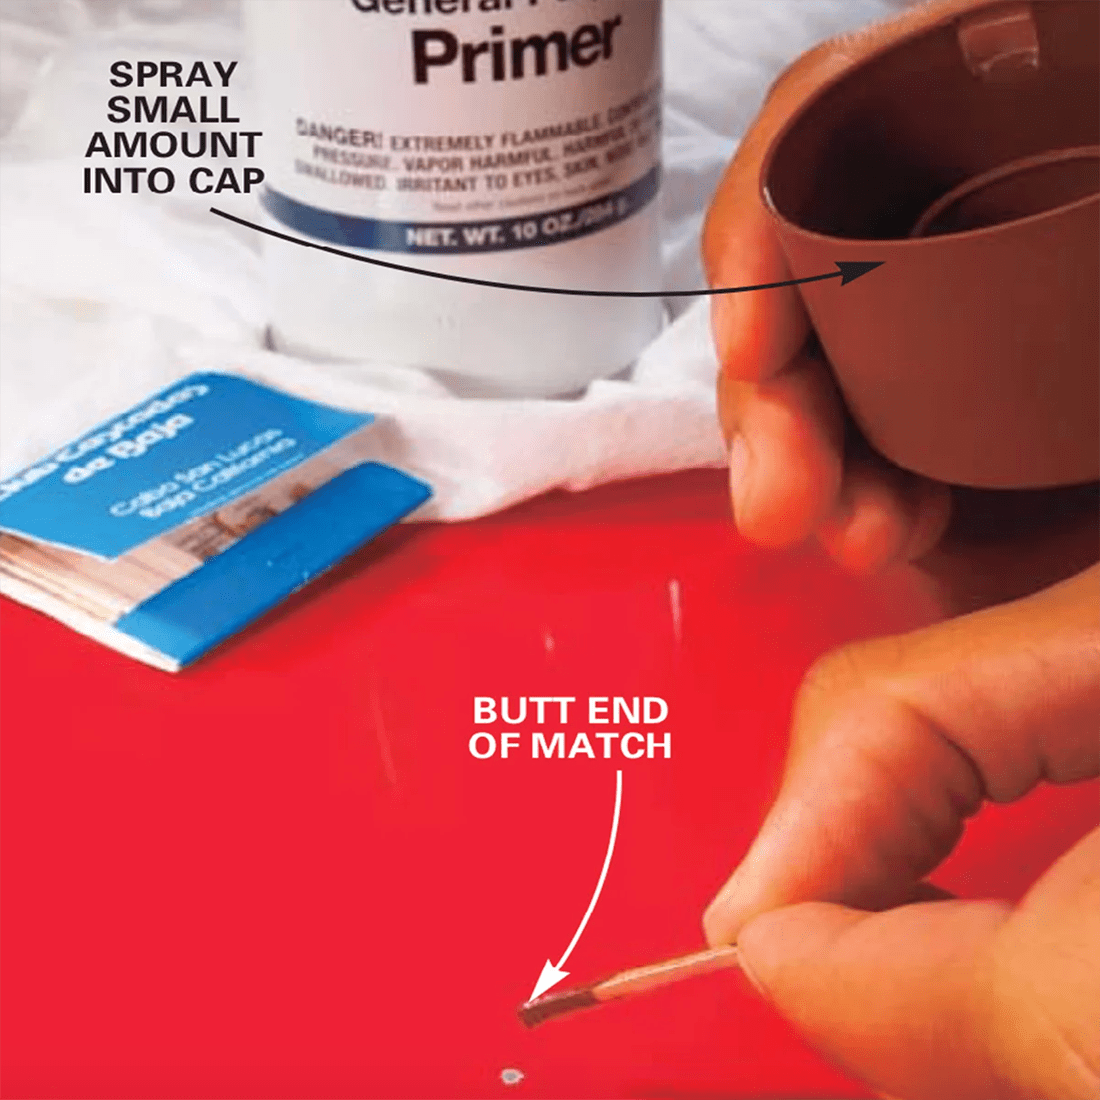 Paint chip repair - how to fix paint chips on a car - step 3